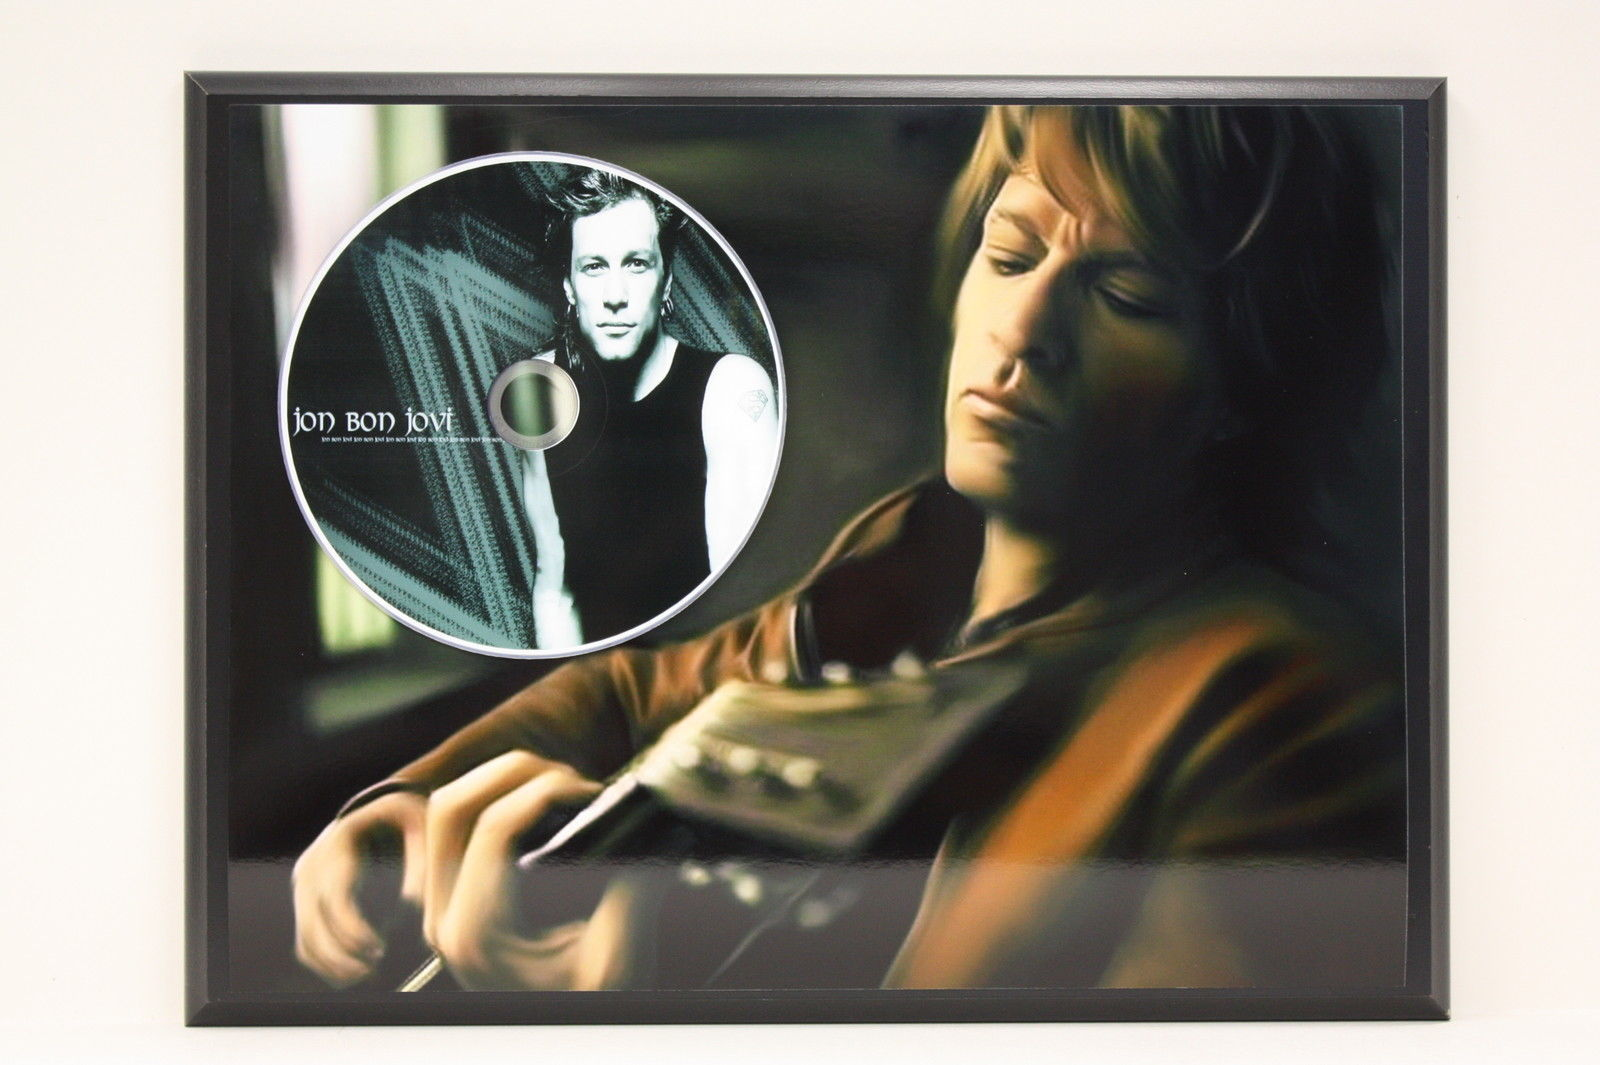 bon jovi picture cd ltd edition plaque free and 25 similar items. Black Bedroom Furniture Sets. Home Design Ideas